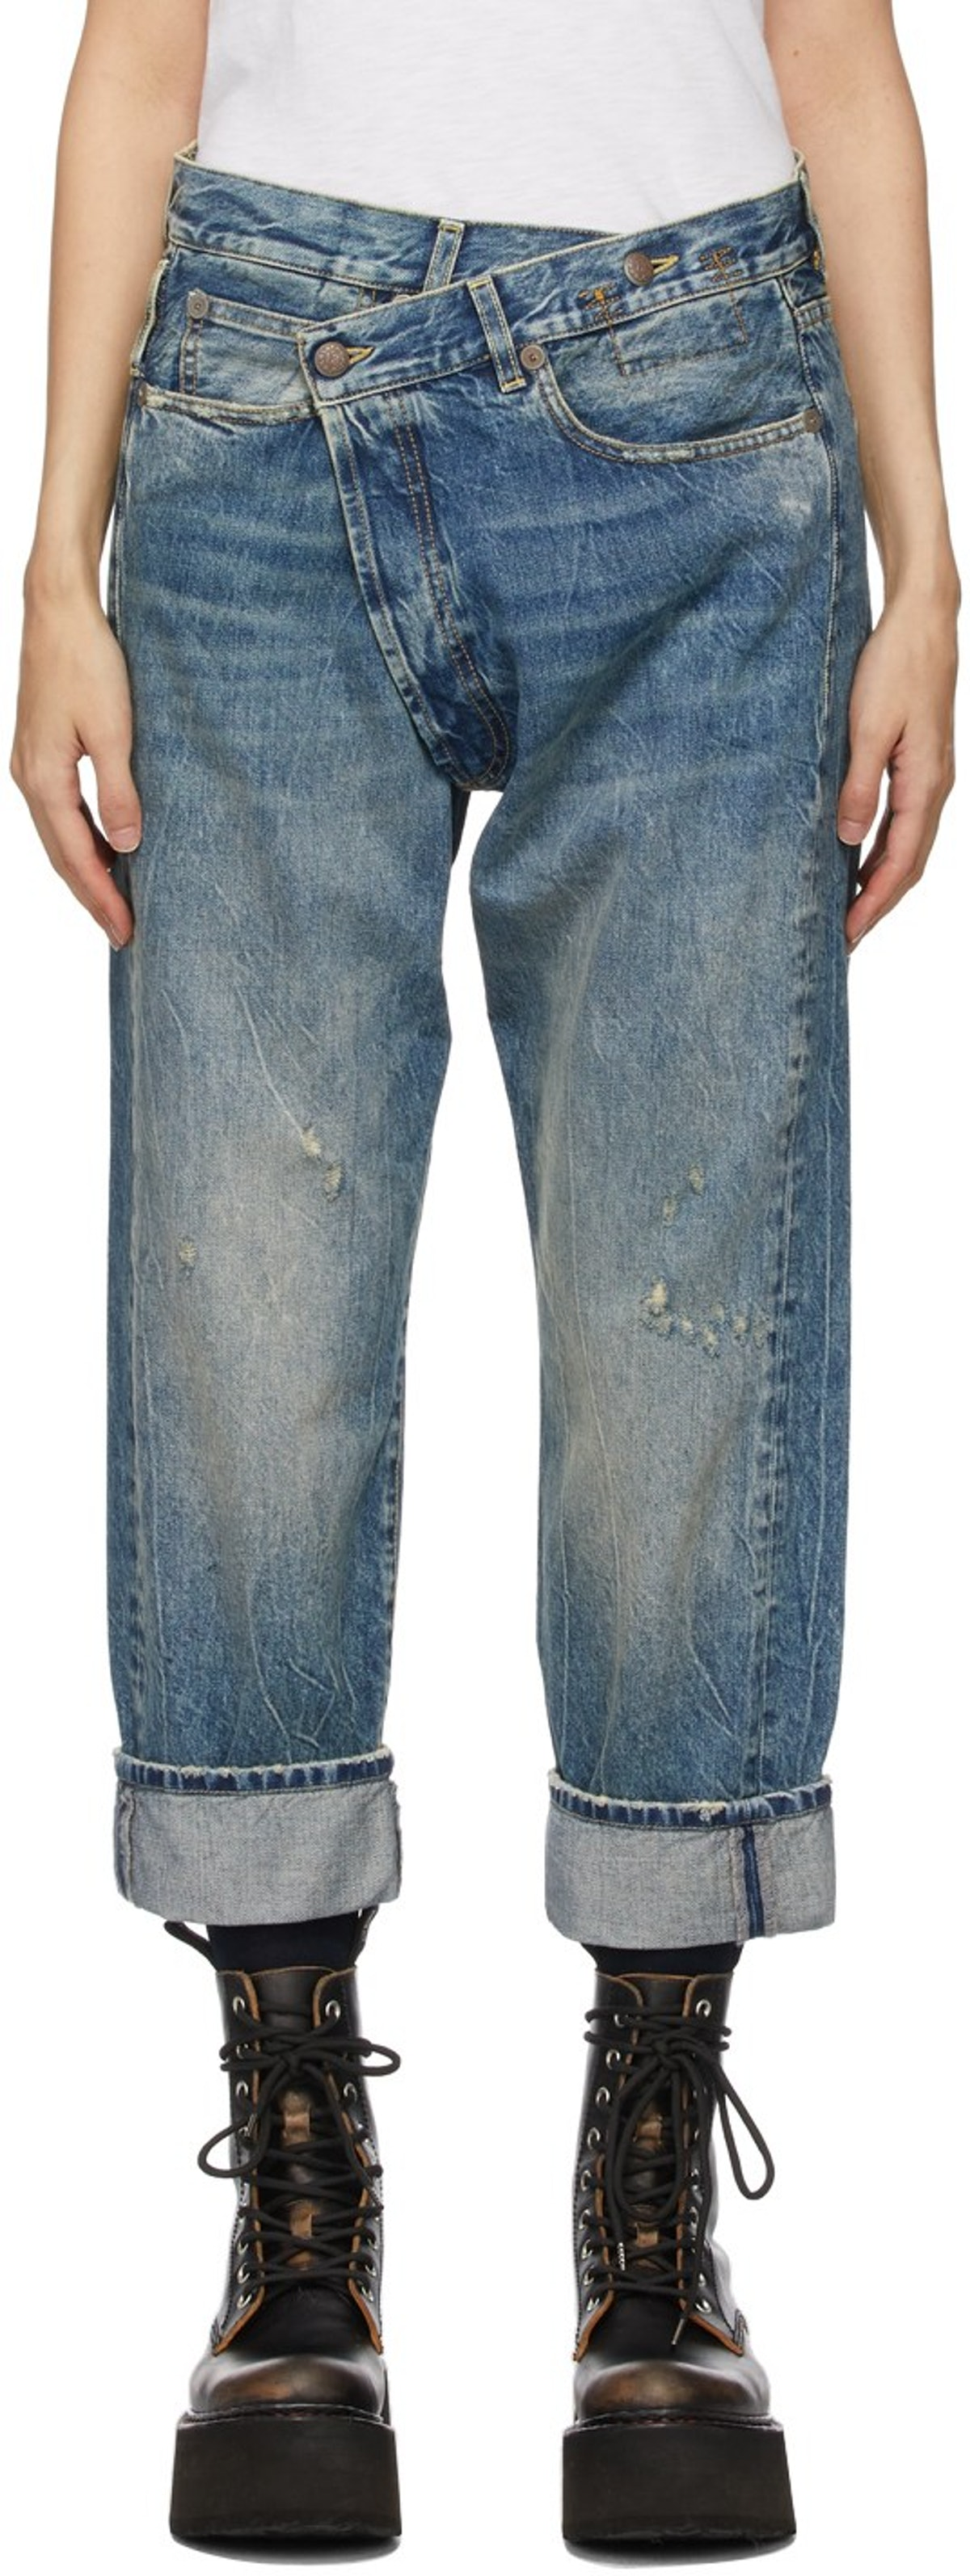 Blue Cross-Over Jeans from R13, available to shop via SSENSE.